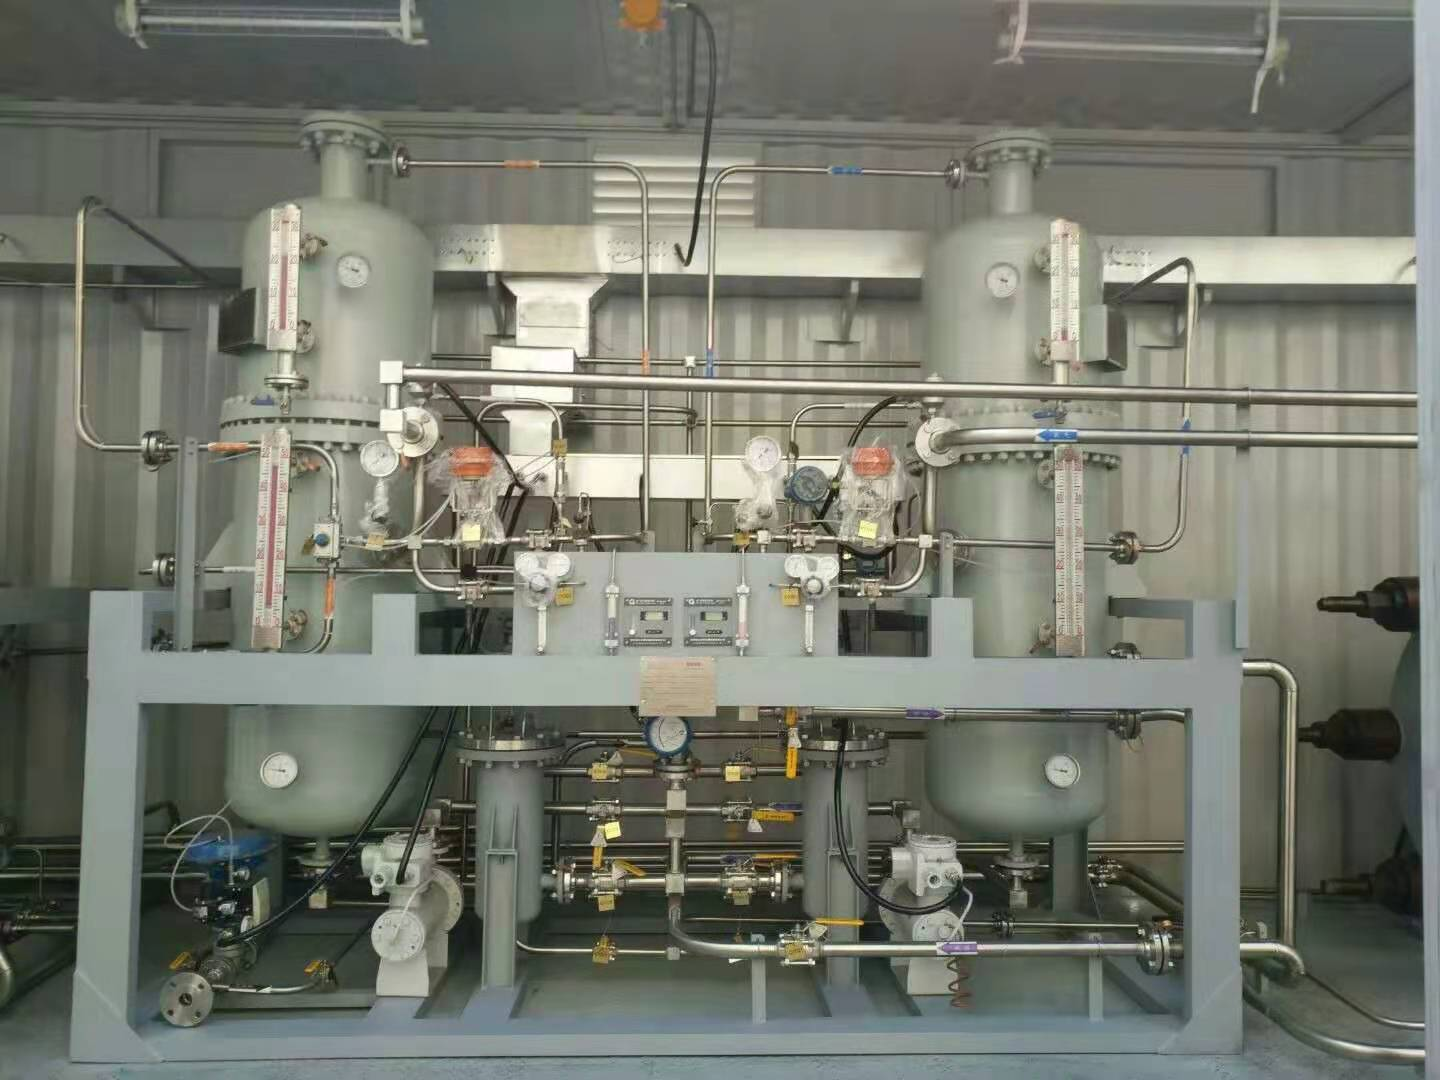 集装箱水电解制氢设备.Container type hydrogen production equipment by water electrolysis